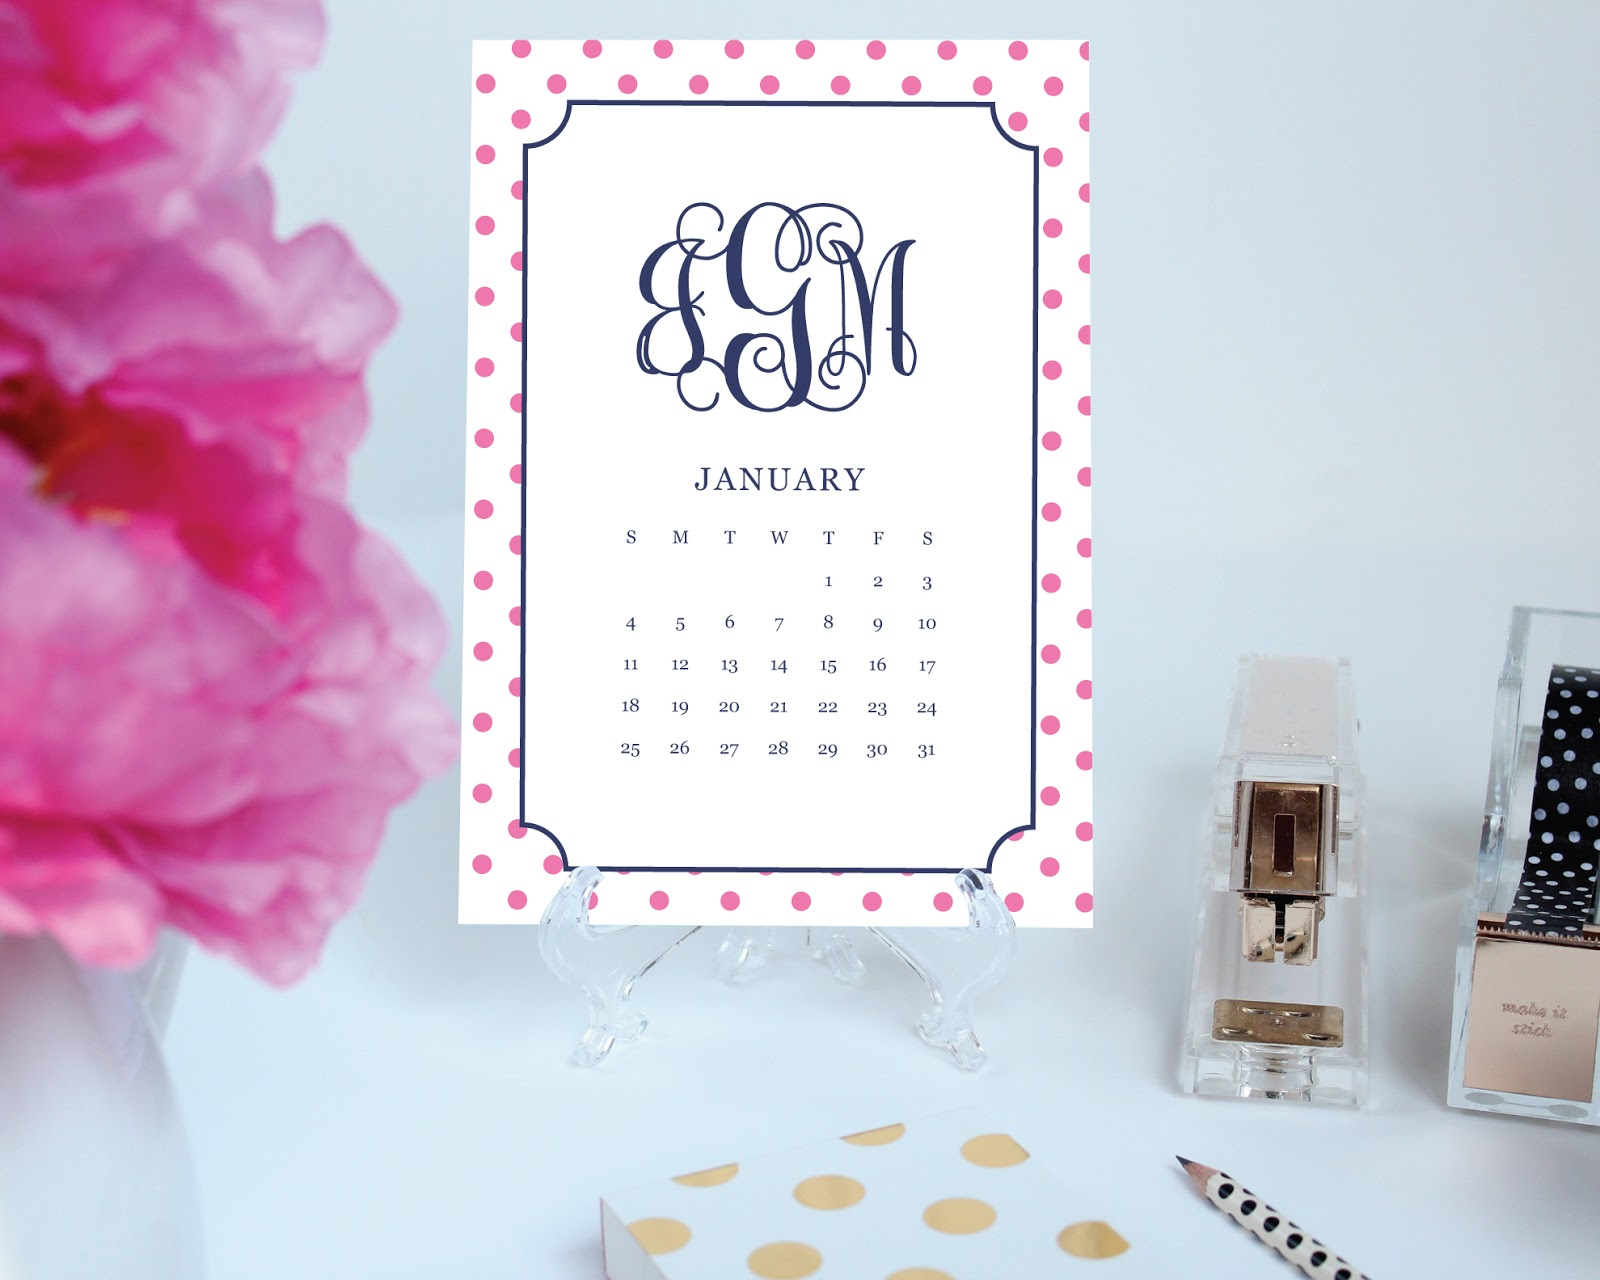 New [customized] Printable Desk Calendars from thepreppygreek.etsy.com